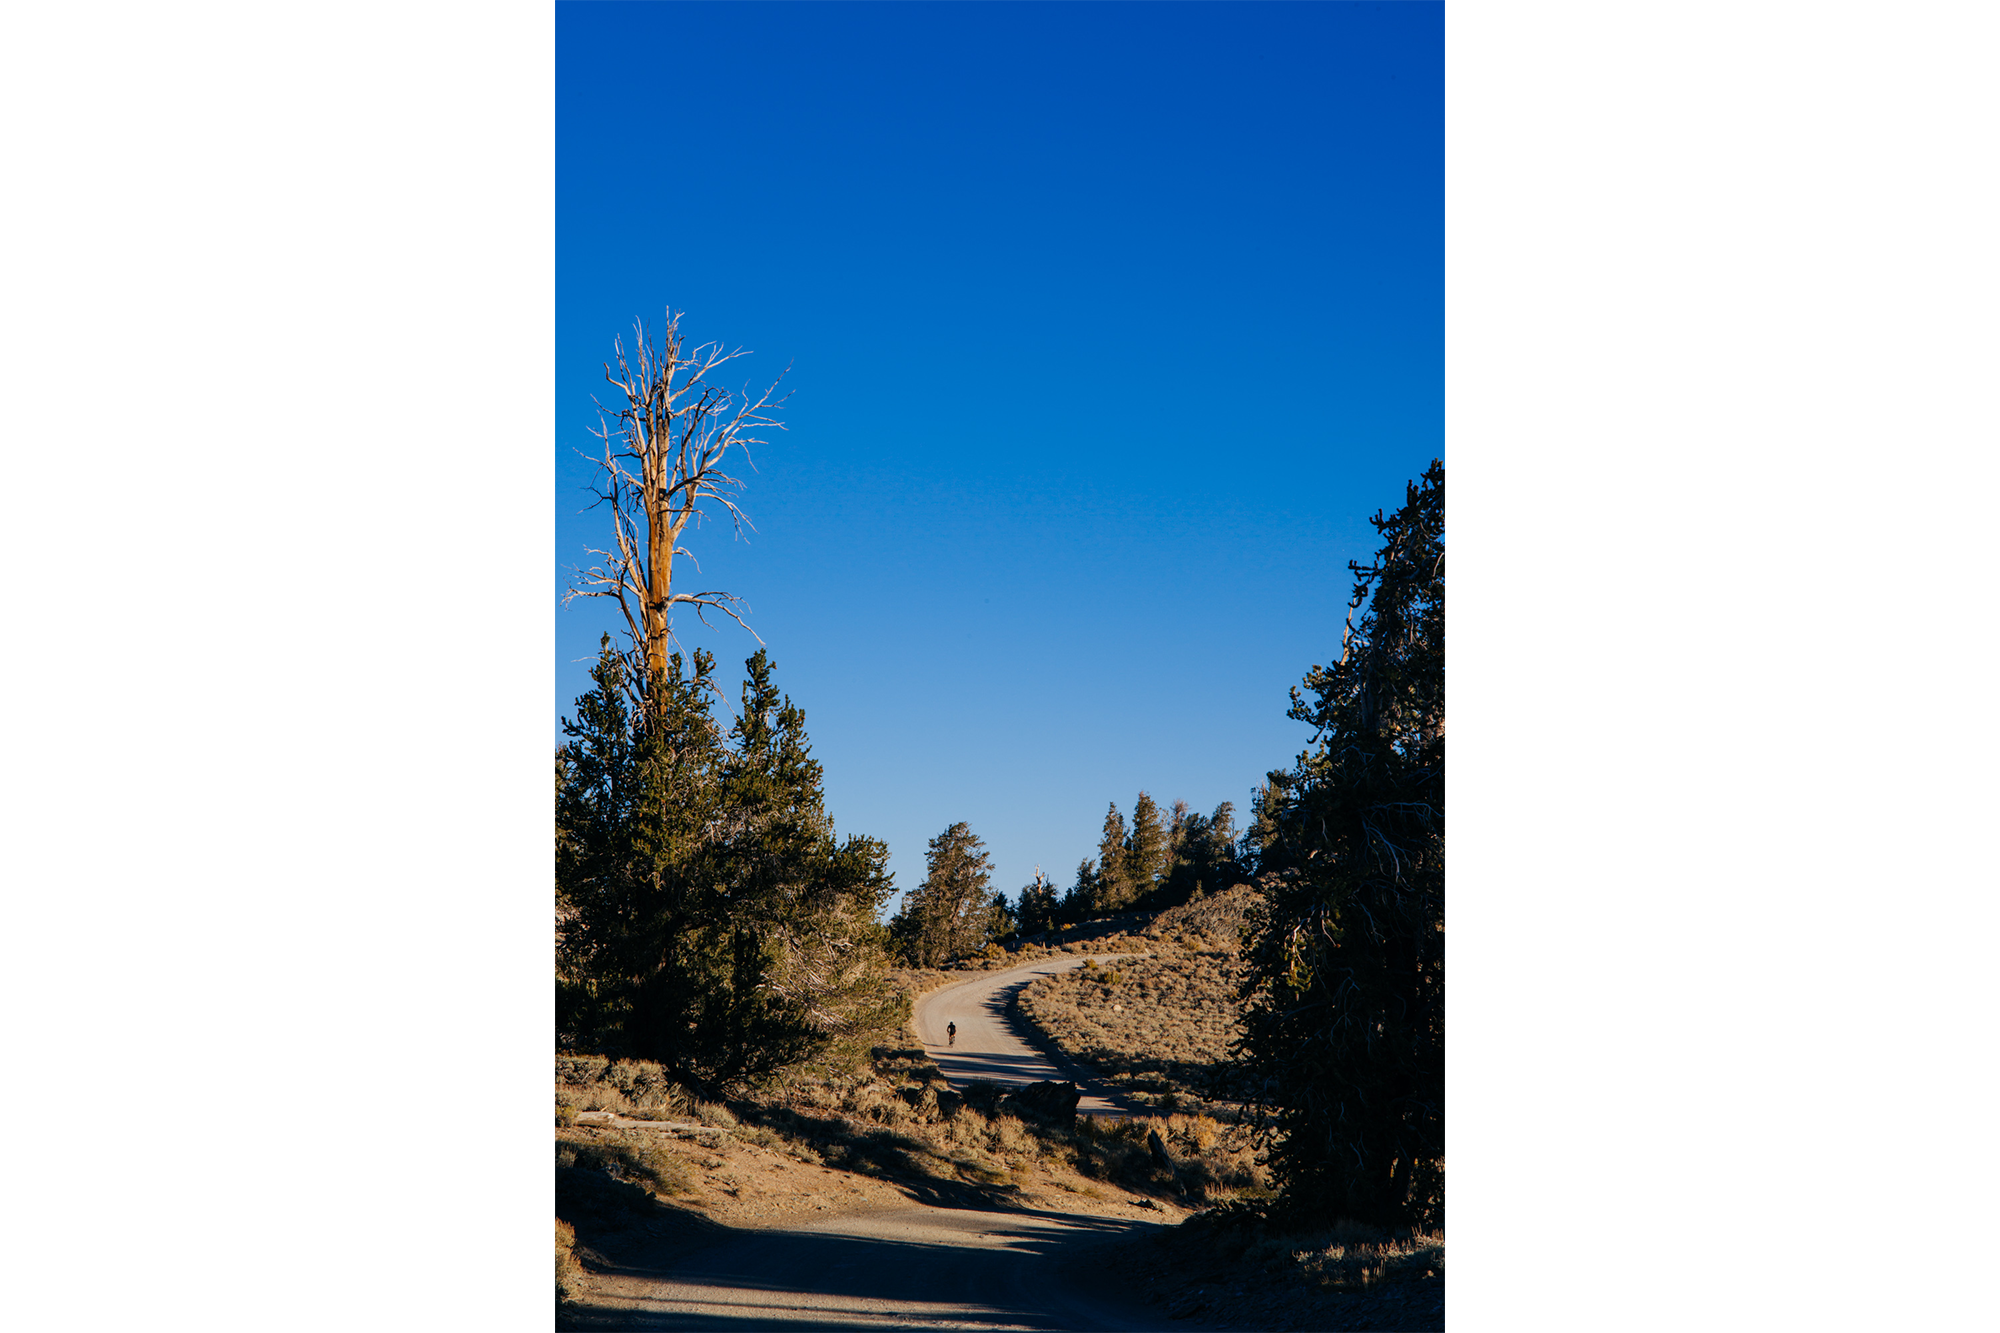 Riding Up White Mountain in the Inyo National Forest-24